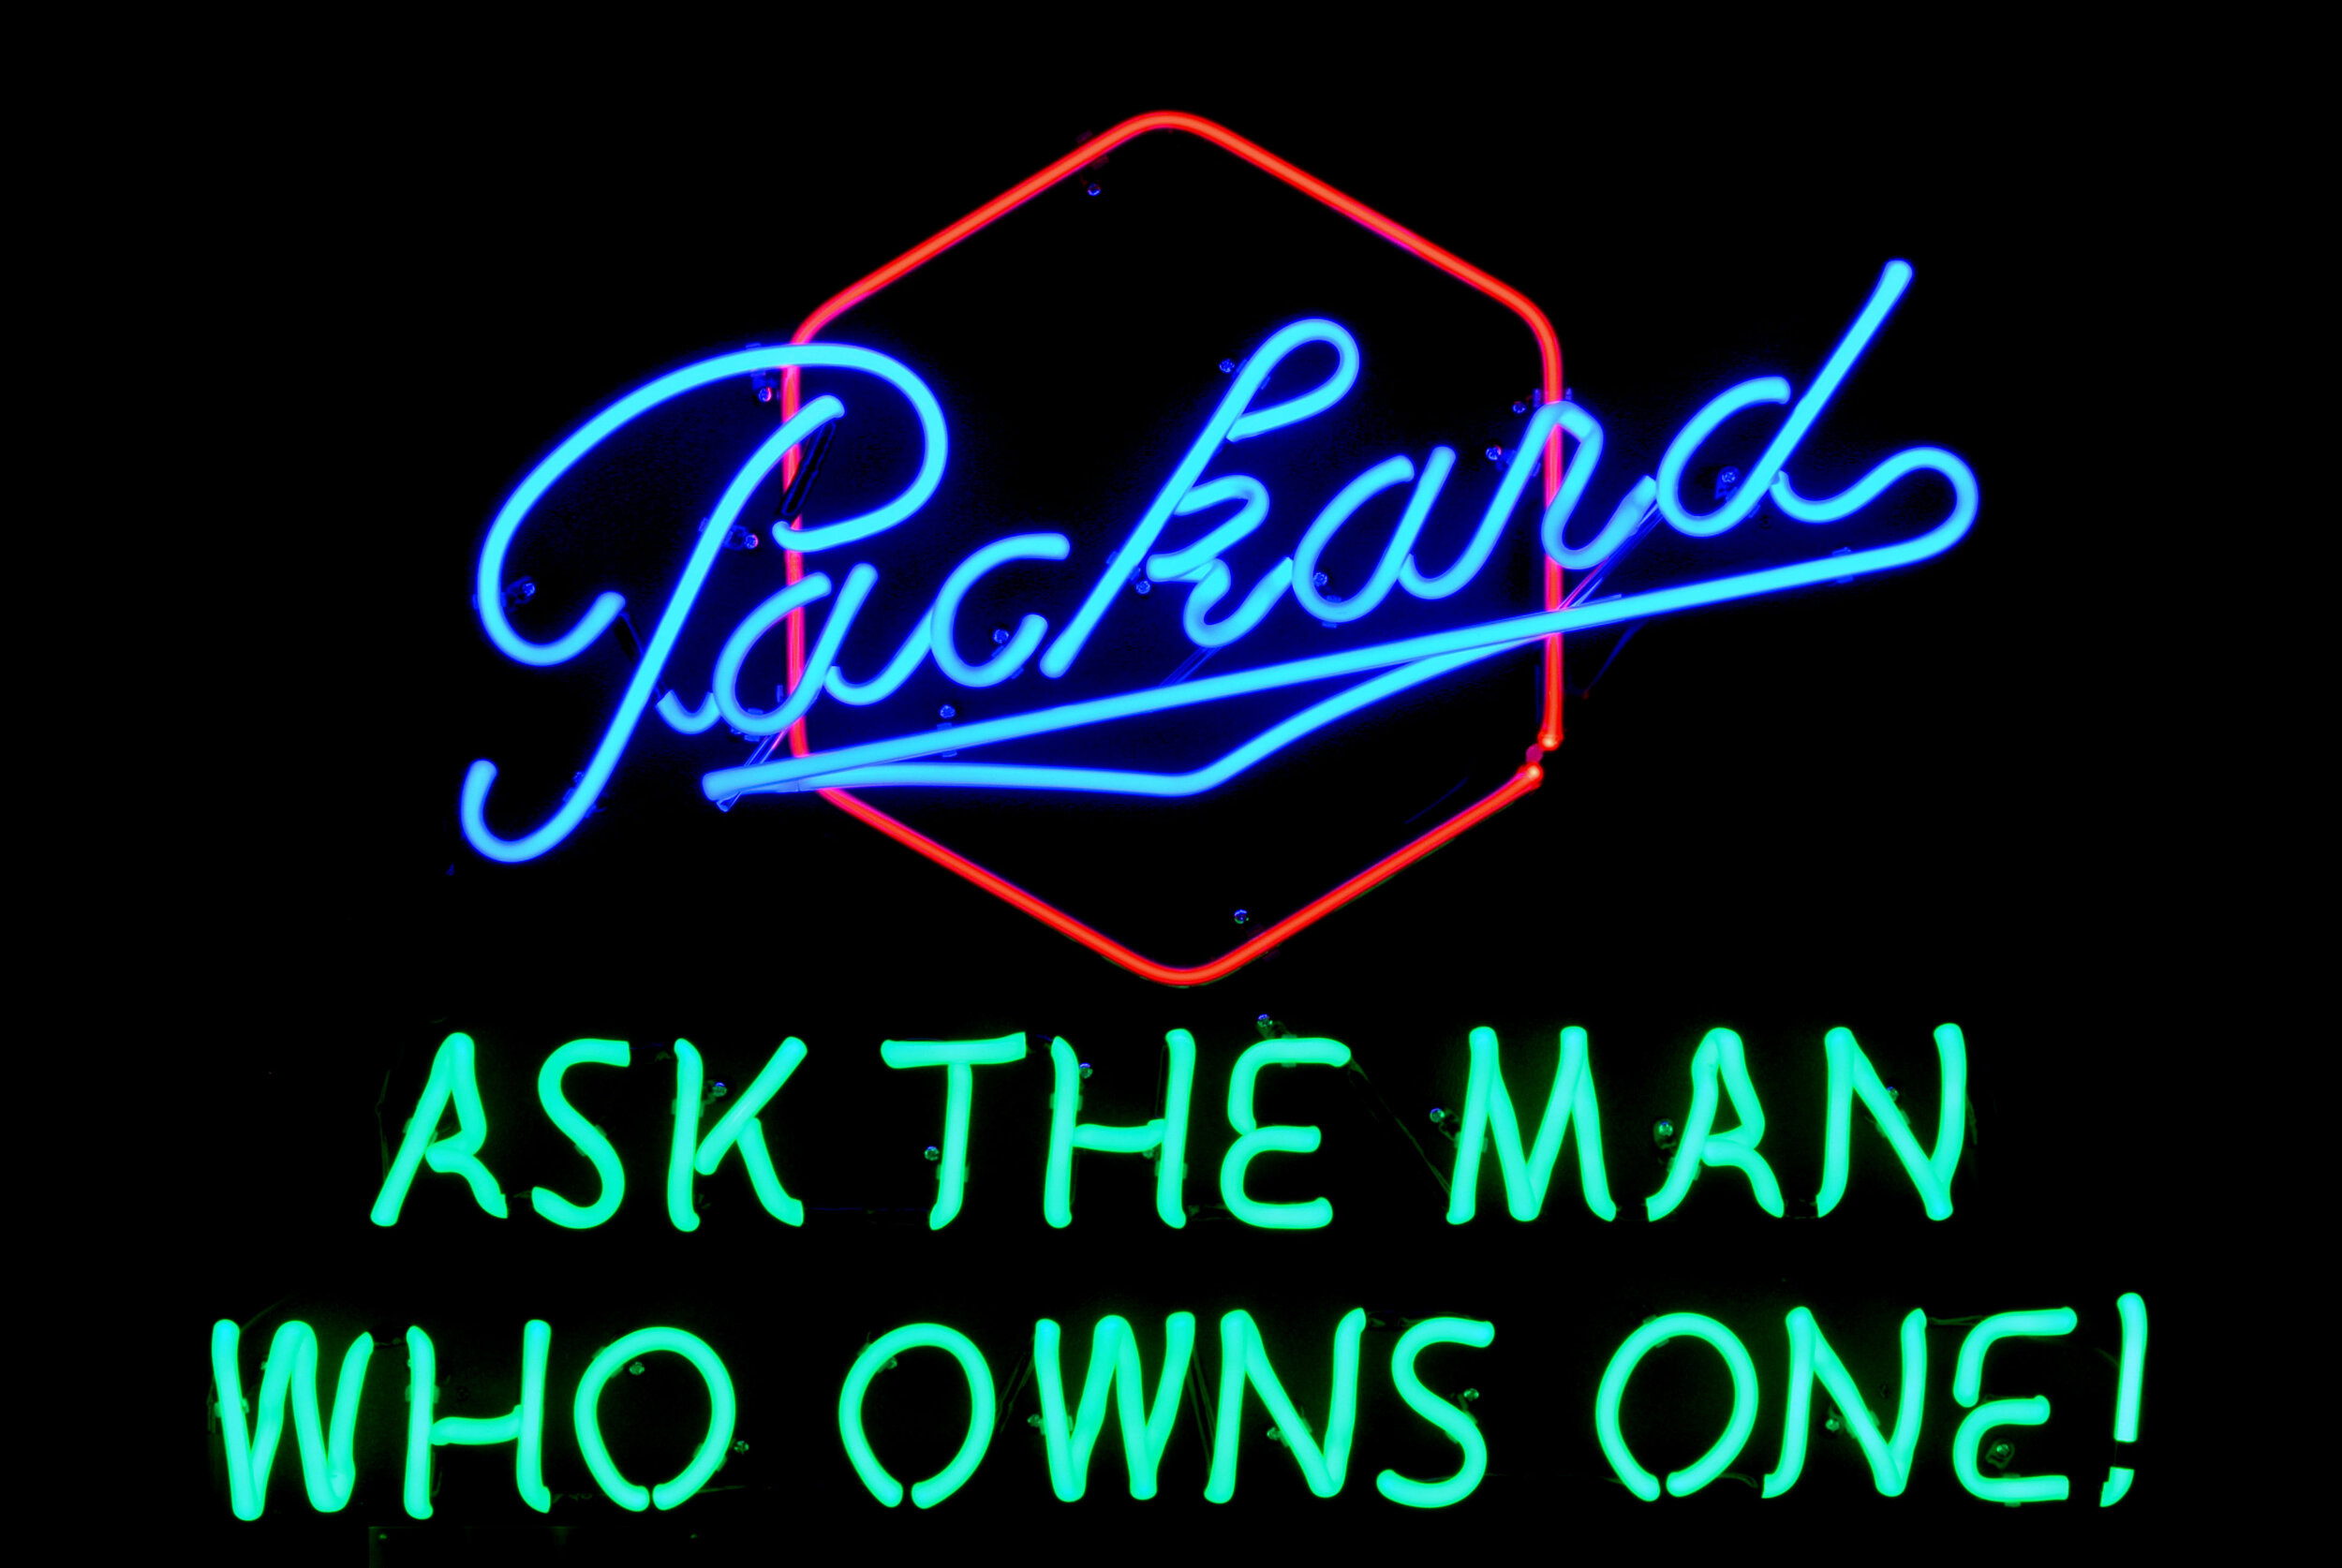 PACKARD - ASK THE MAN WHO OWNS ONE! - Neon Sign by John Barton - former Packard New Car Dealer - BartonNeonMagic.com